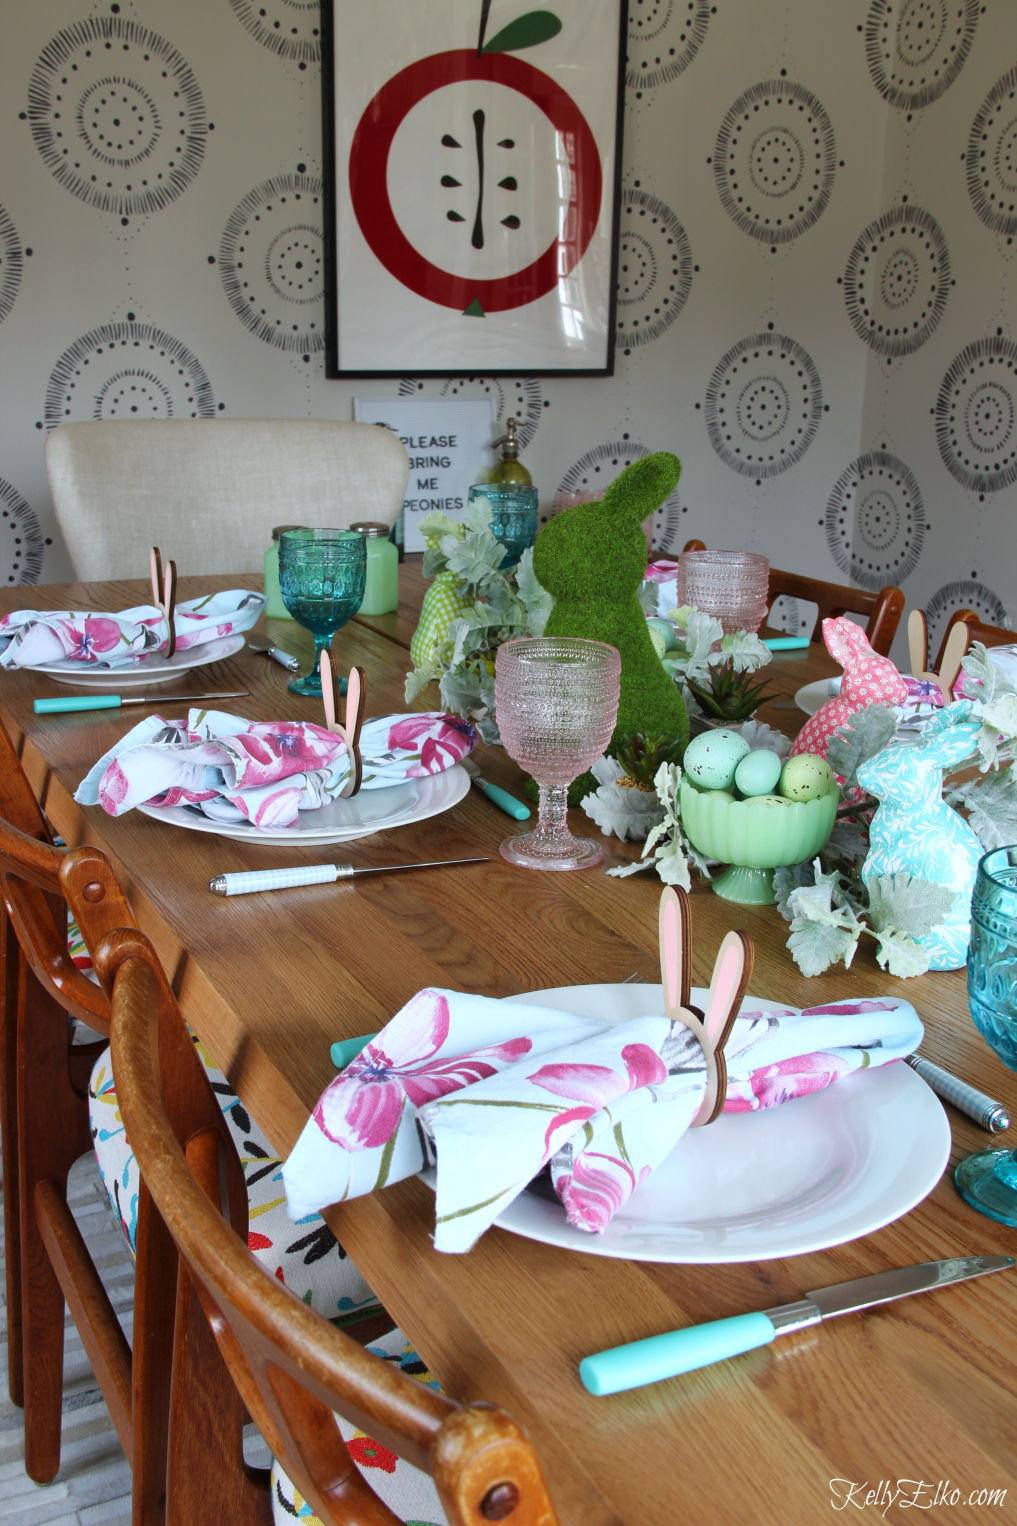 Spring bunny centerpiece - love the pink and blue color scheme on this fun Easter table kellyelko.com #easter #easterdecor #spring #springdecor #springtable #centerpiece #springcenterpiece #easterbunny #bunny